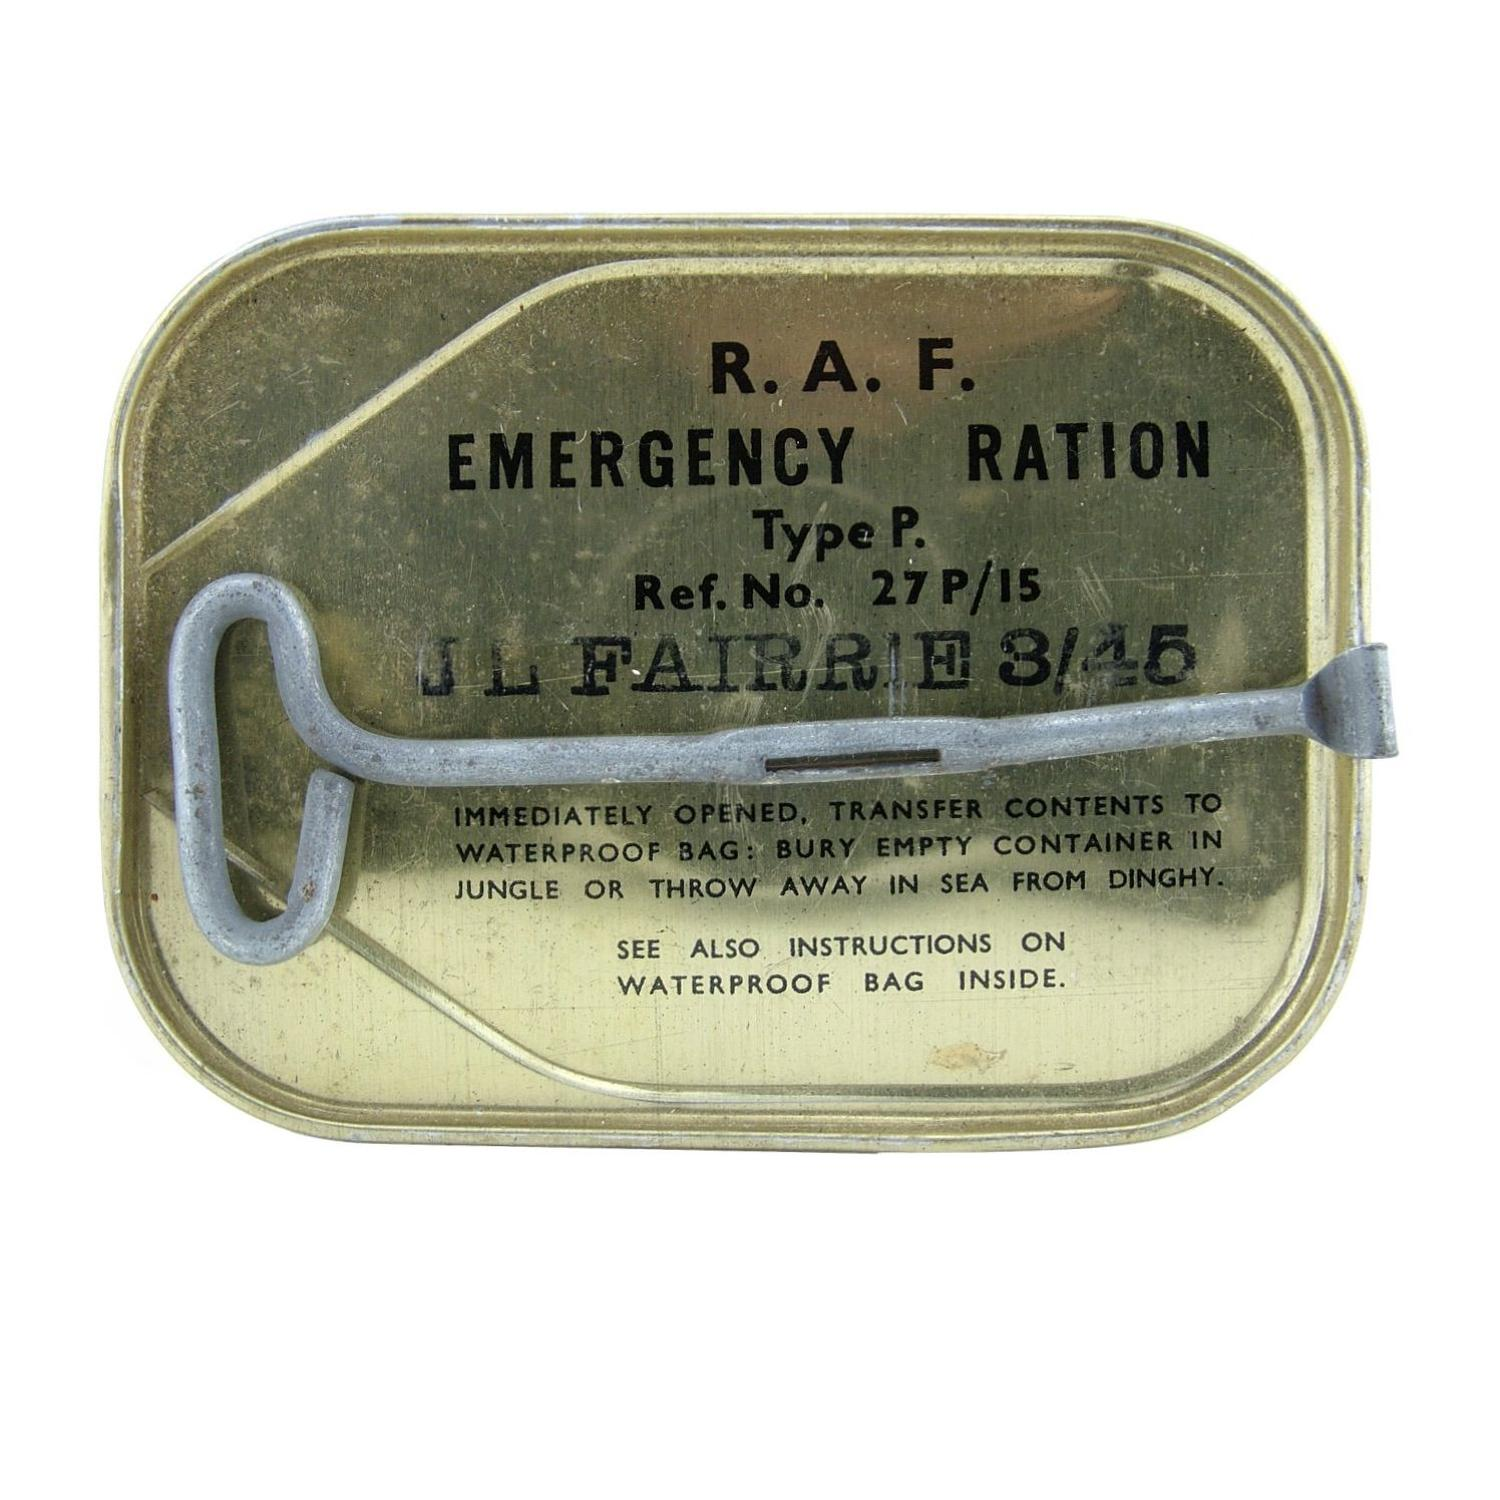 RAF emergency ration, type P